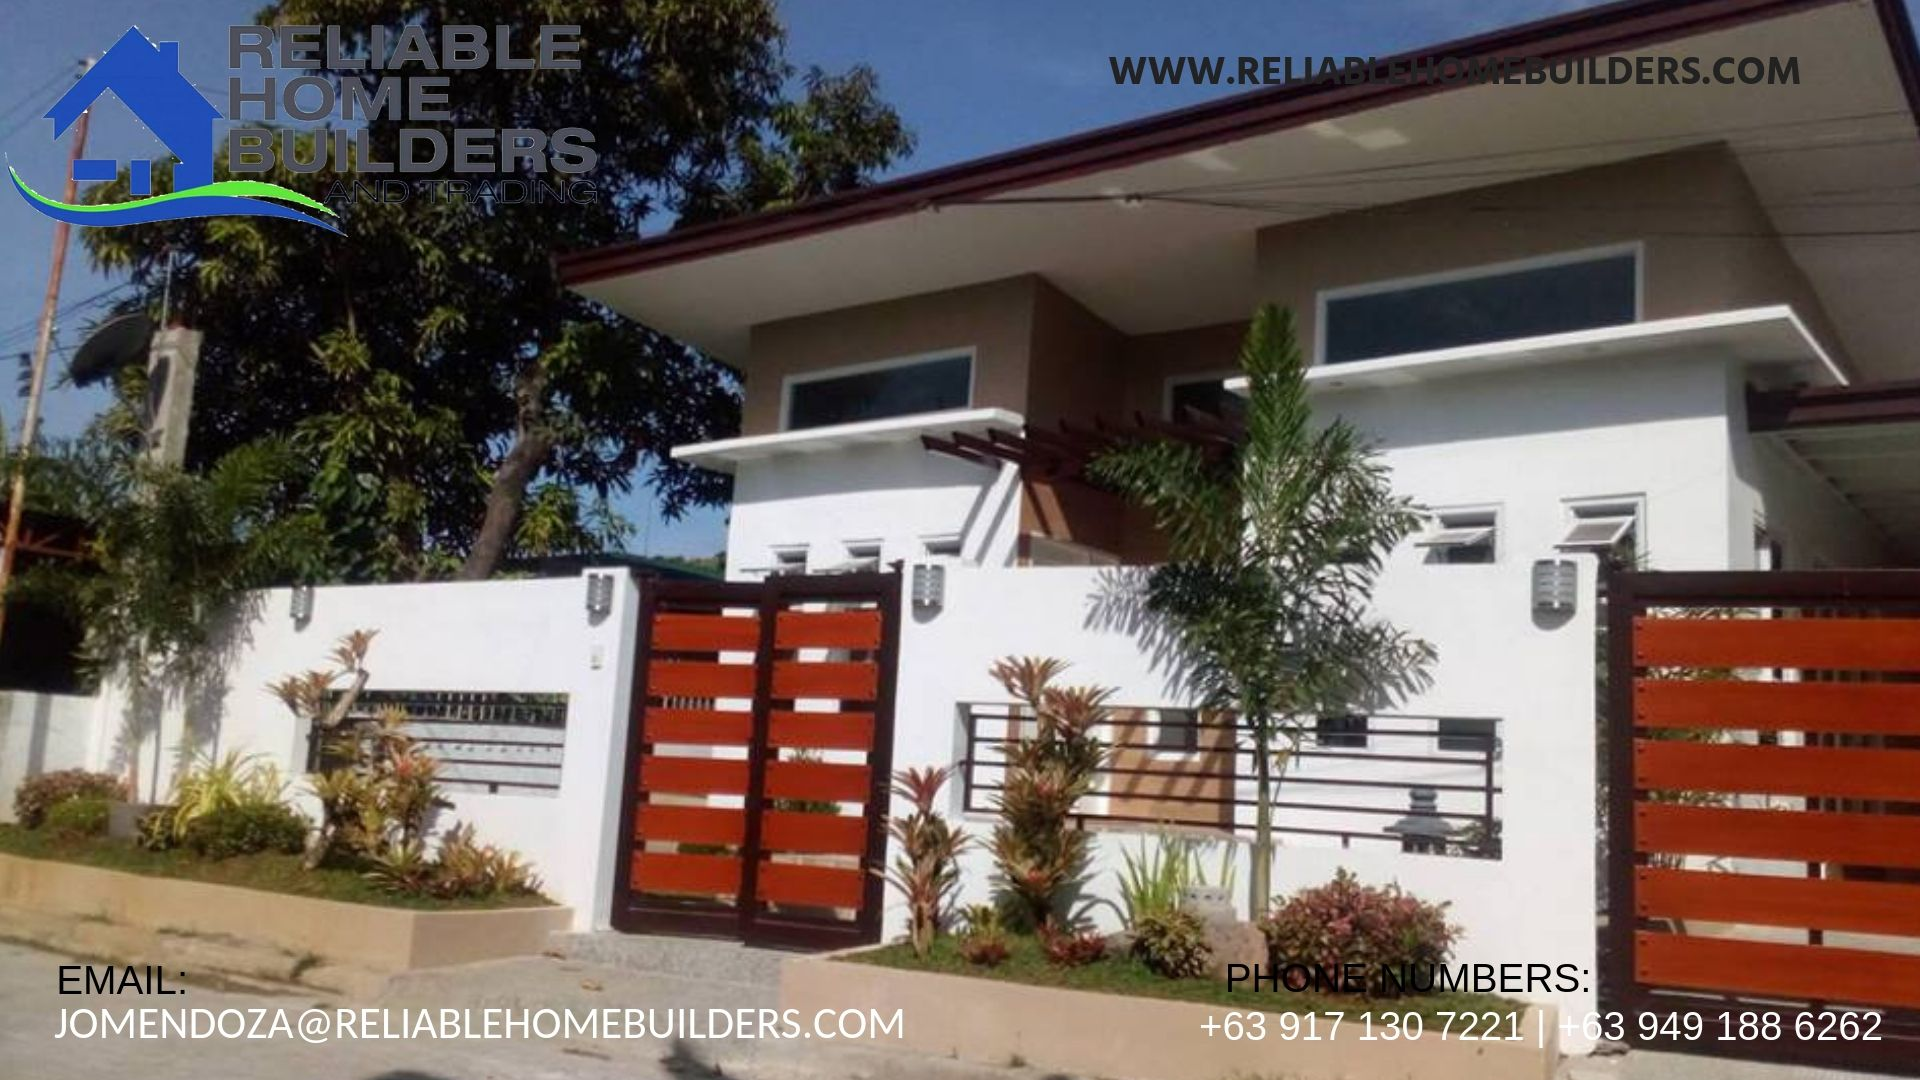 Naga House Construction Project Home Construction Home Builders Construction Cost